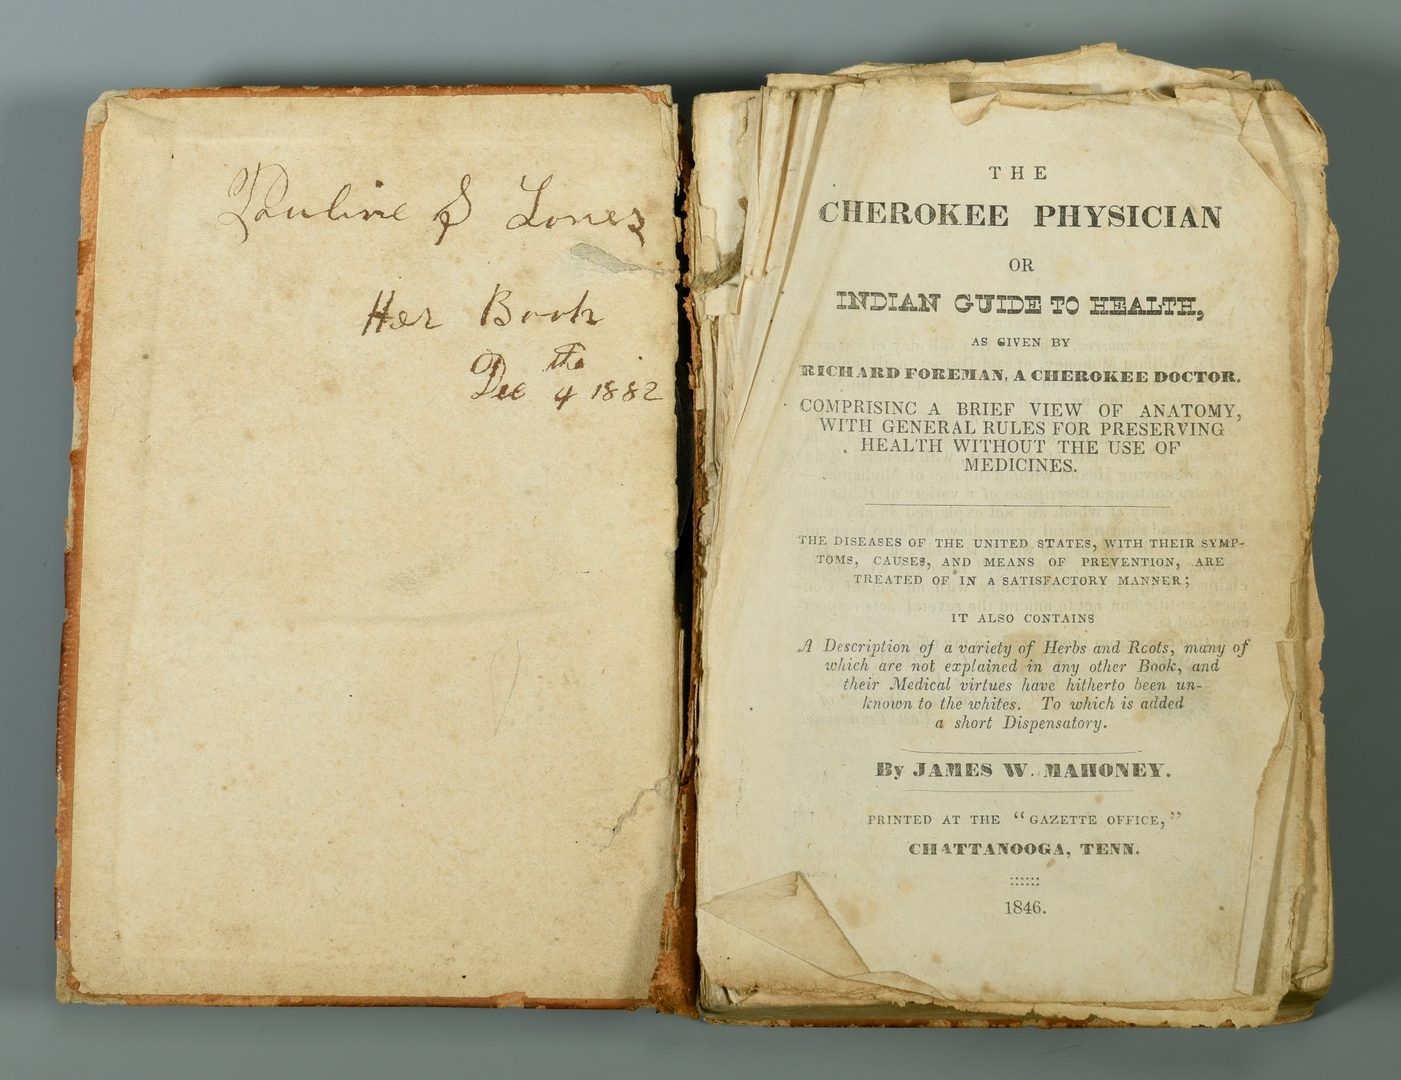 Lot 718: The Cherokee Physician or Indian Guide to Health